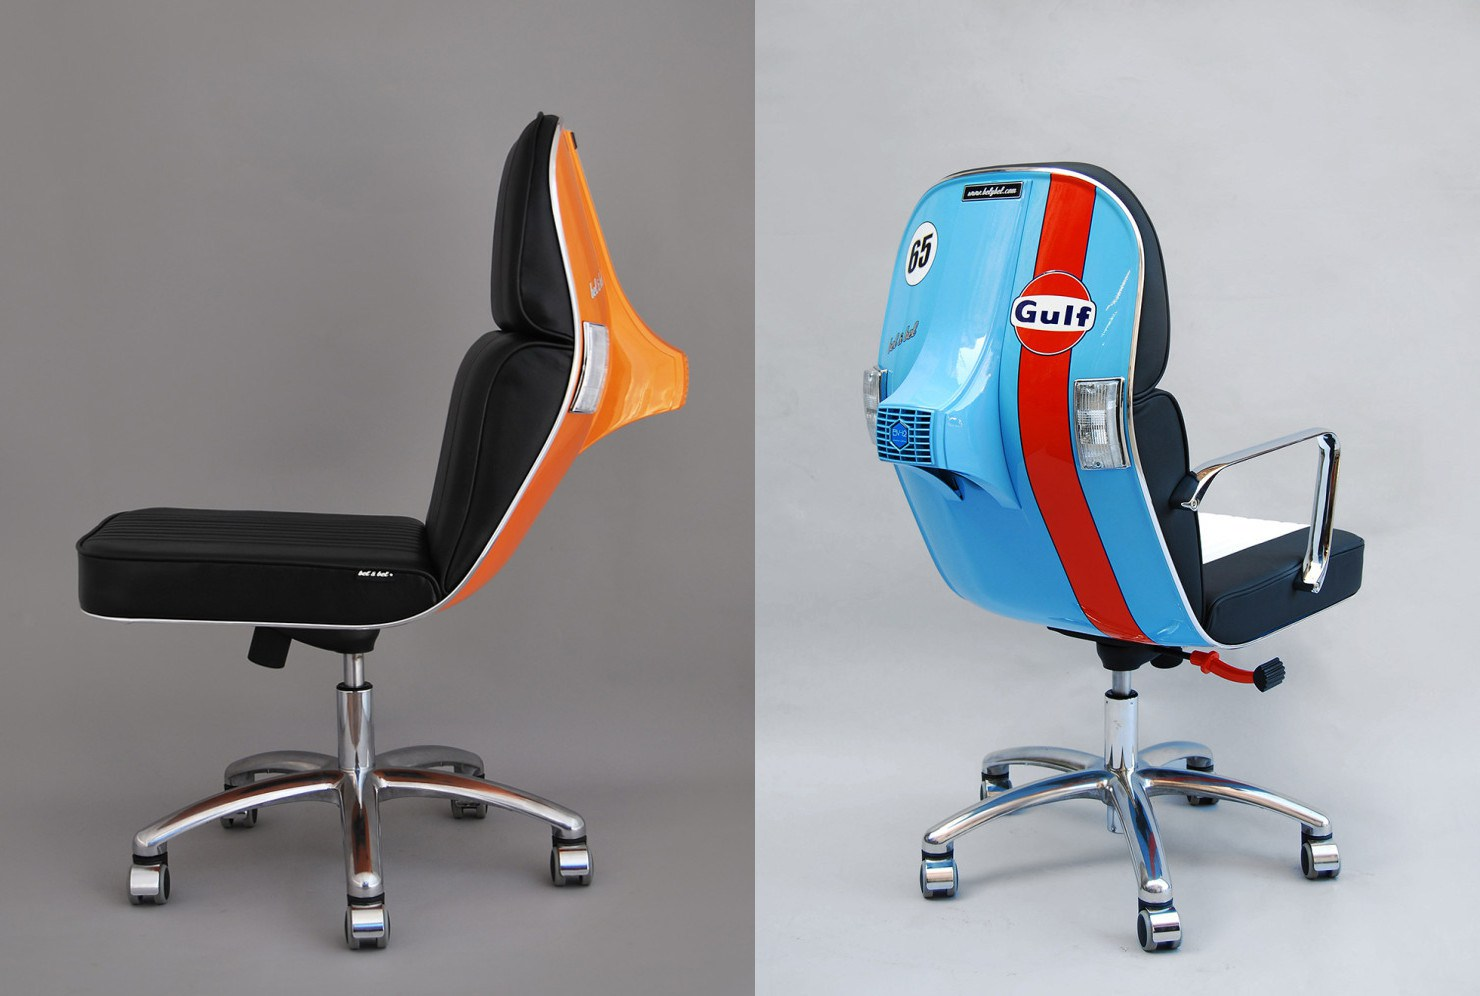 jeep desk chair outdoor camping chairs office made out of old vespa scooters modern